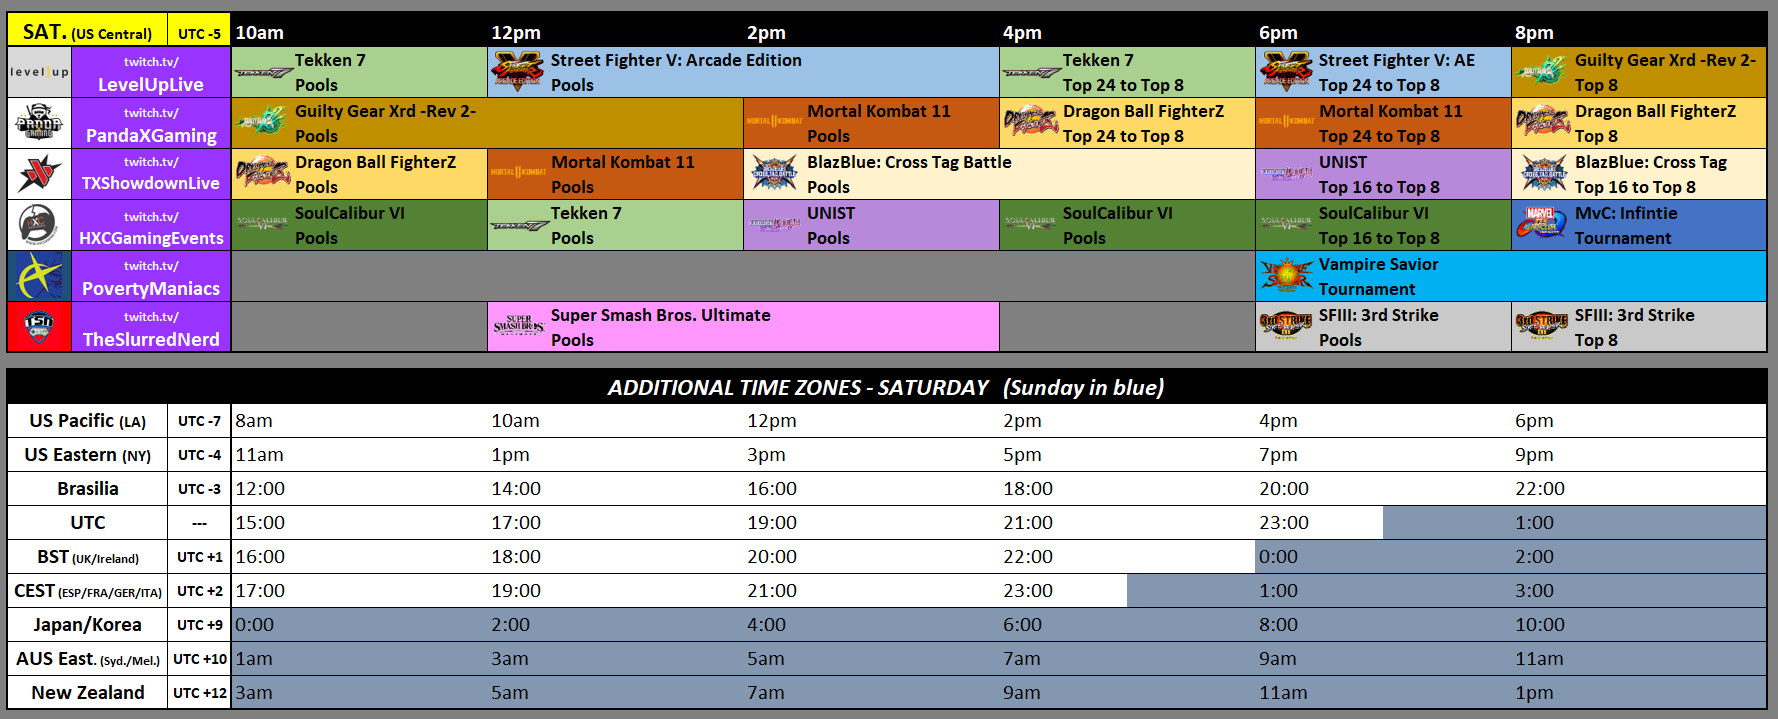 Texas Showdown 2019 Event Schedule 2 out of 3 image gallery